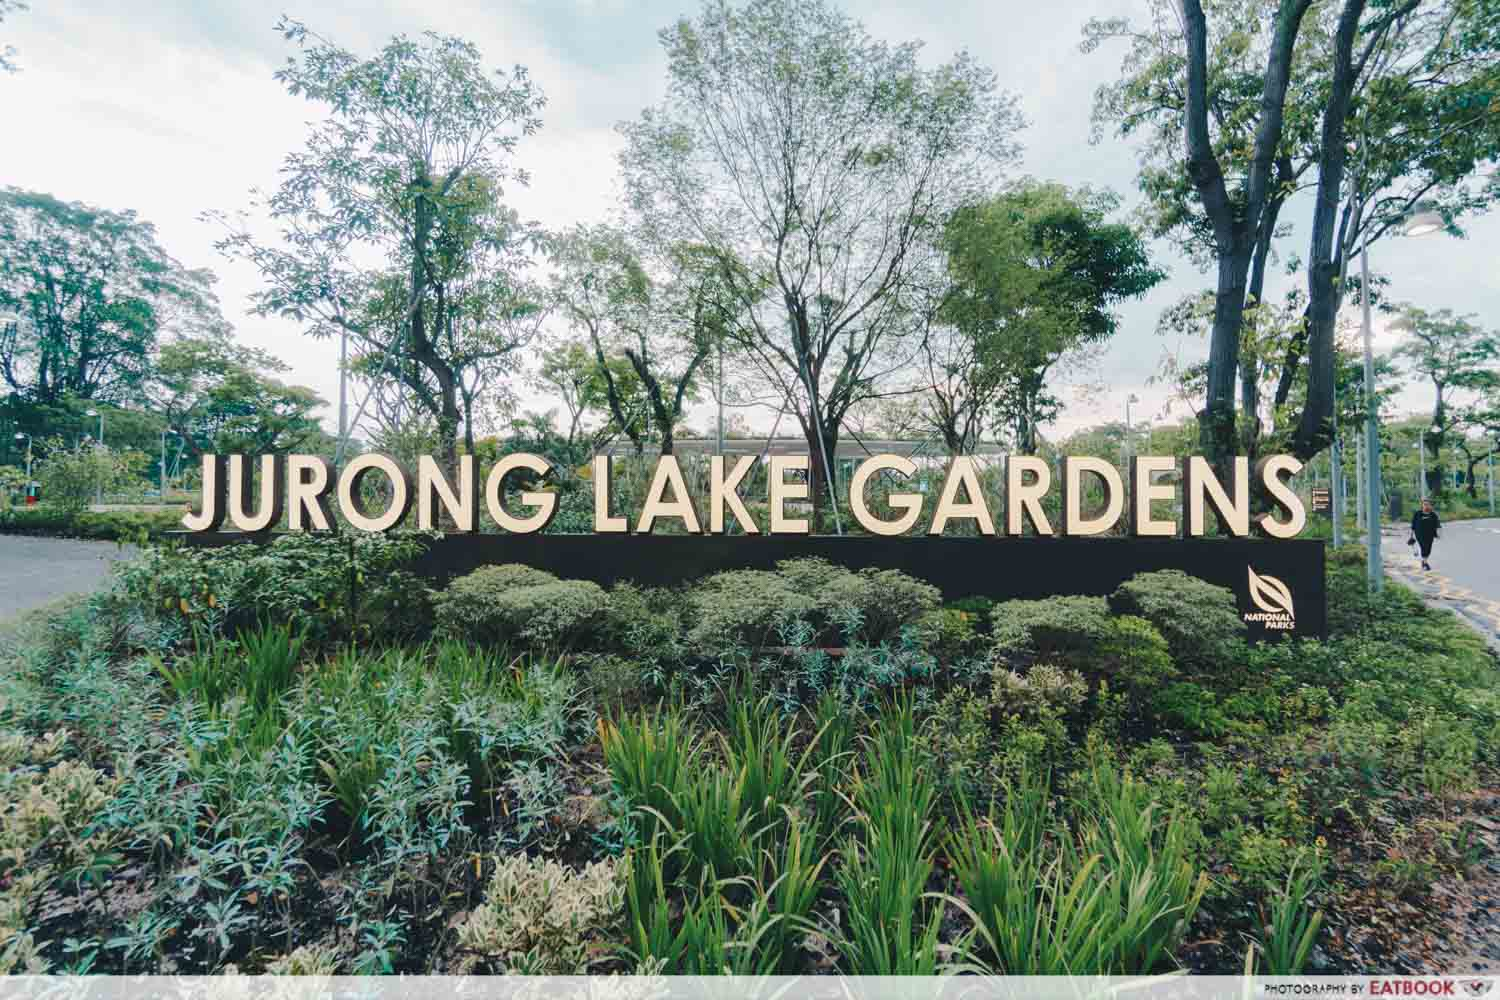 Coast-to-Coast Food - Jurong Lake Gardens